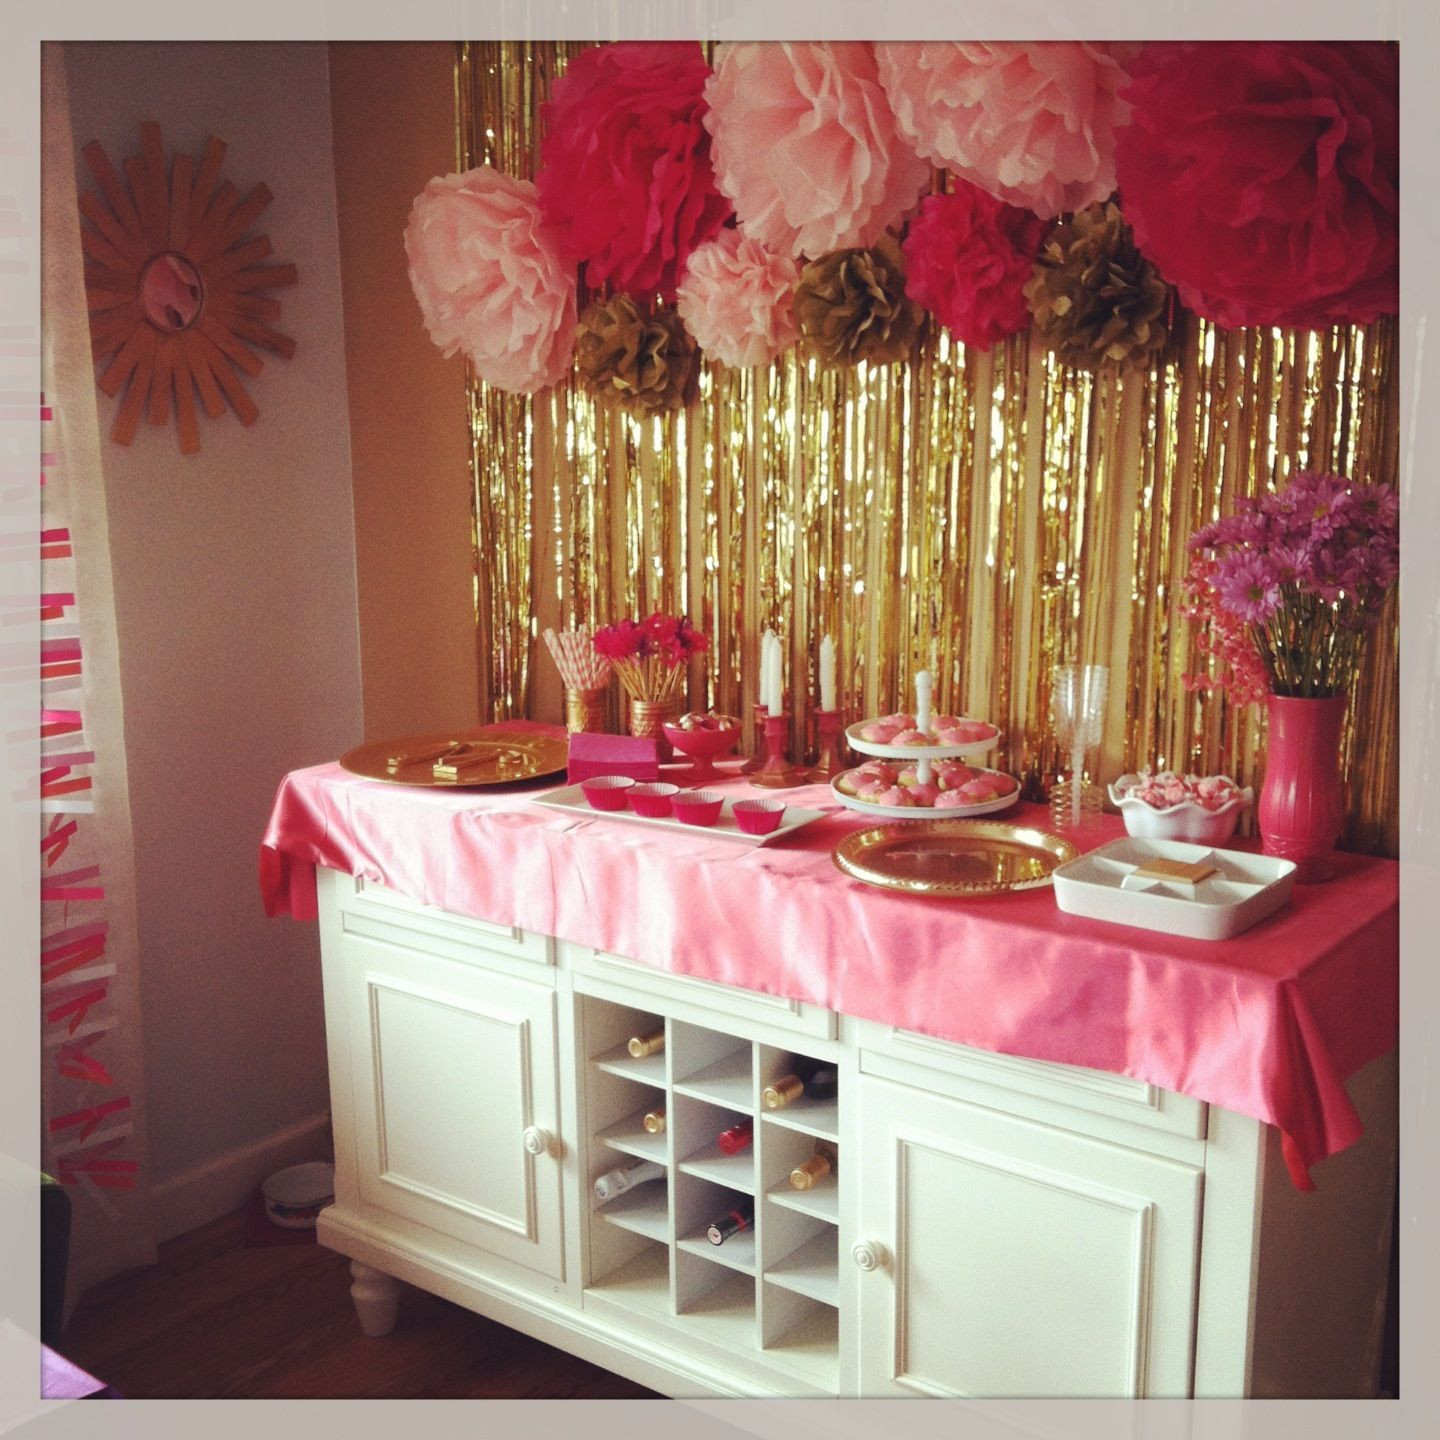 Best ideas about Pink And Gold Birthday Party Decorations . Save or Pin Kids party pink white gold decorations Now.